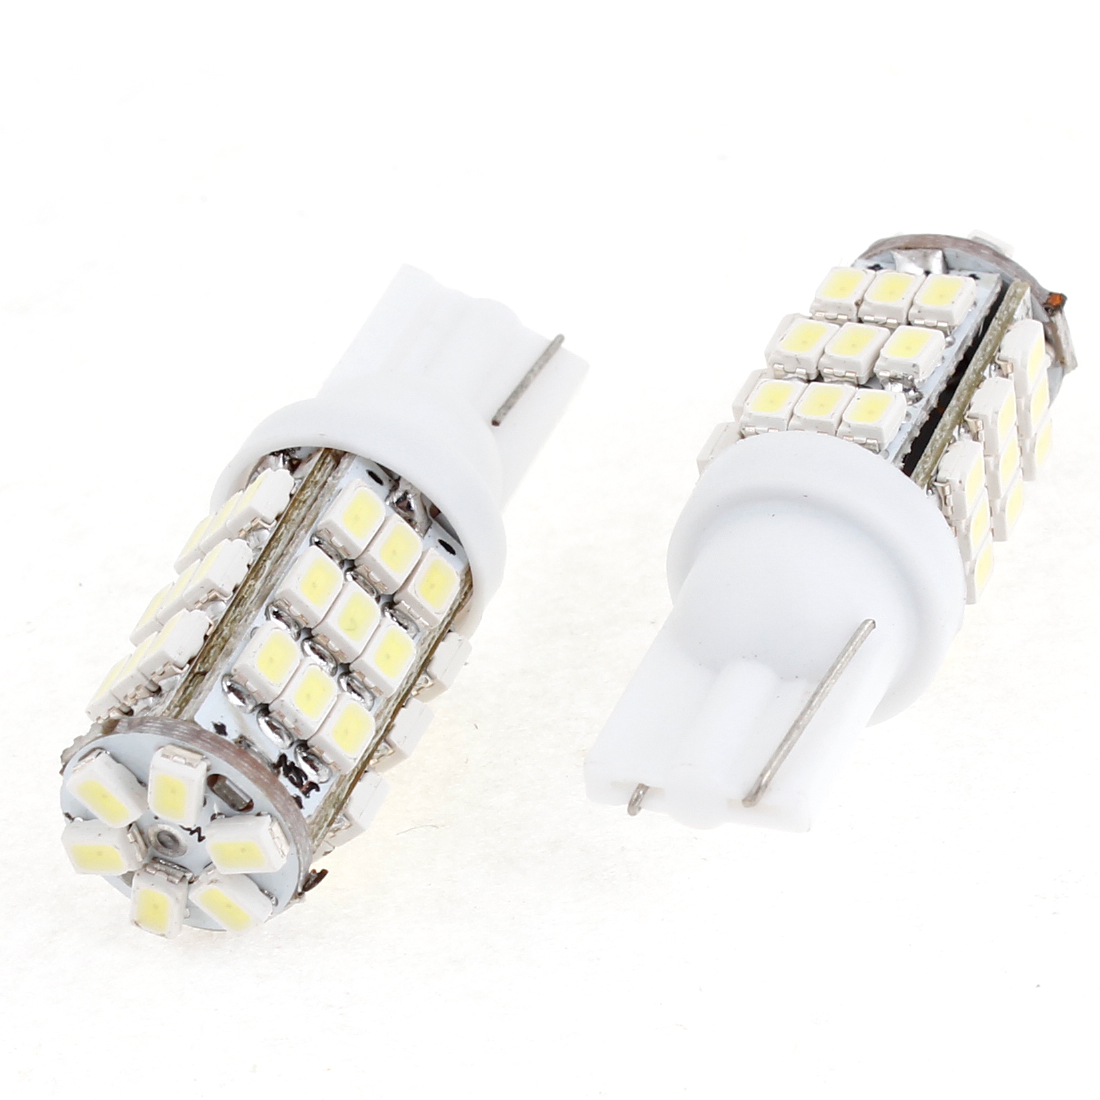 2 Pcs T10 White 42 LED 1206 SMD Dash Reverse Back up Light Bulb for Car